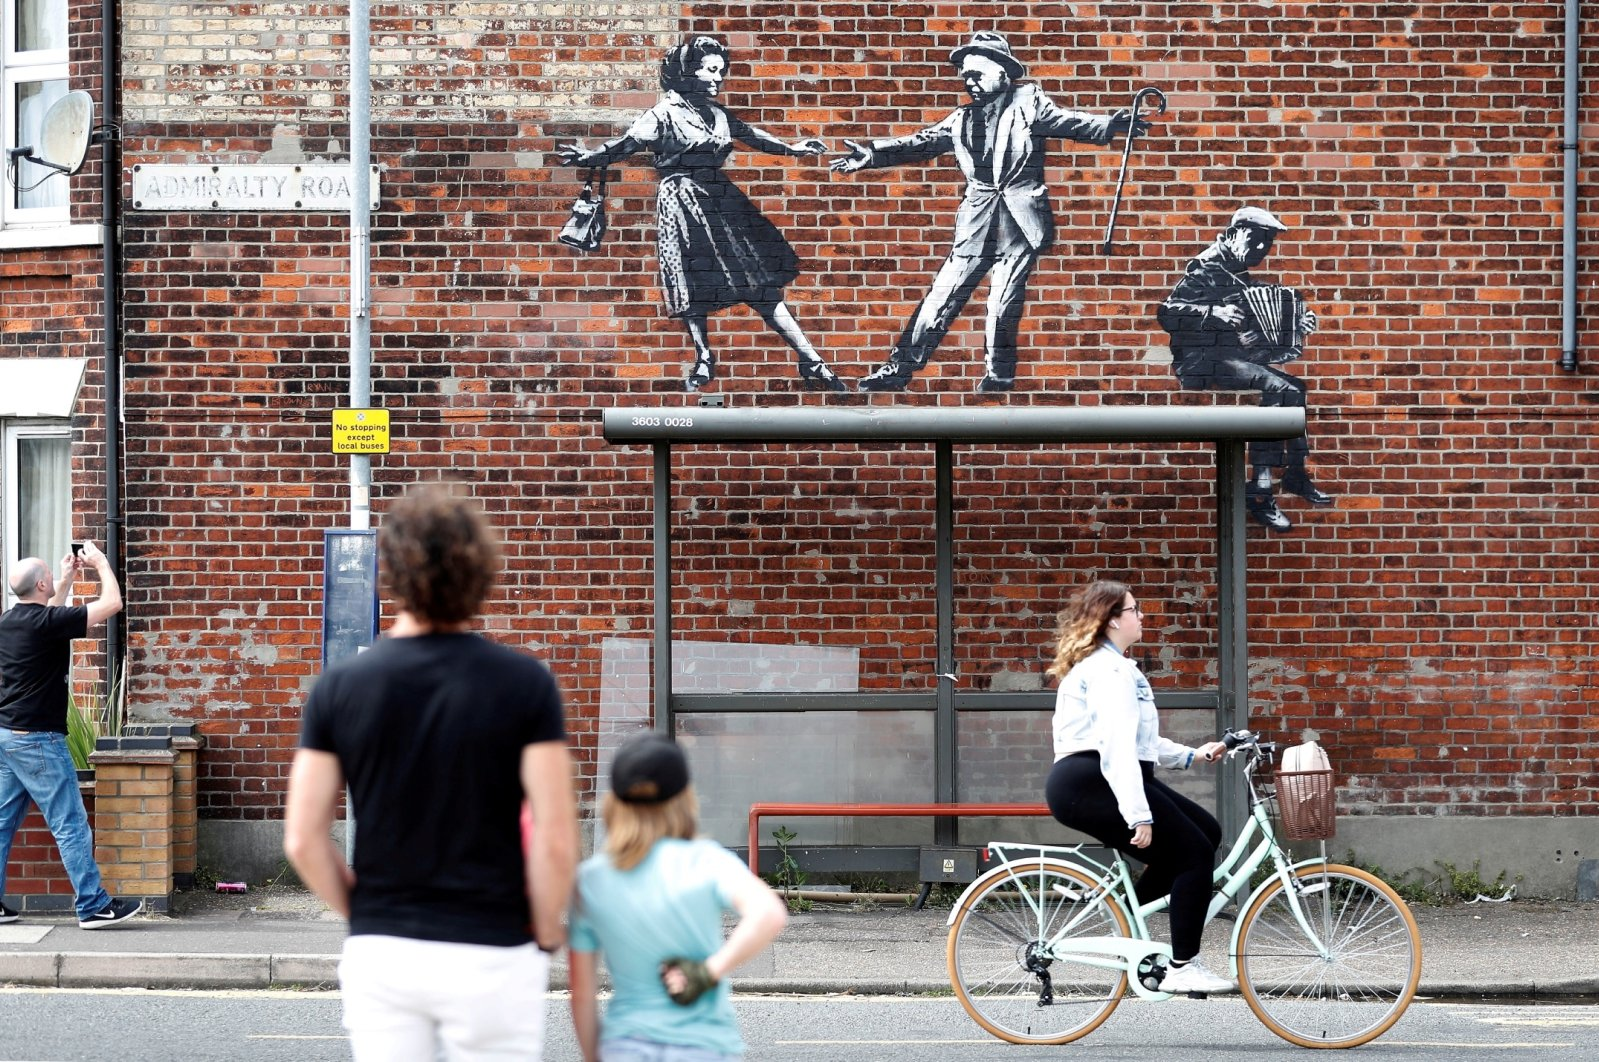 People stop to look at artwork created by Banksy in Great Yarmouth, U.K., Aug. 8, 2021. (Reuters Photo)